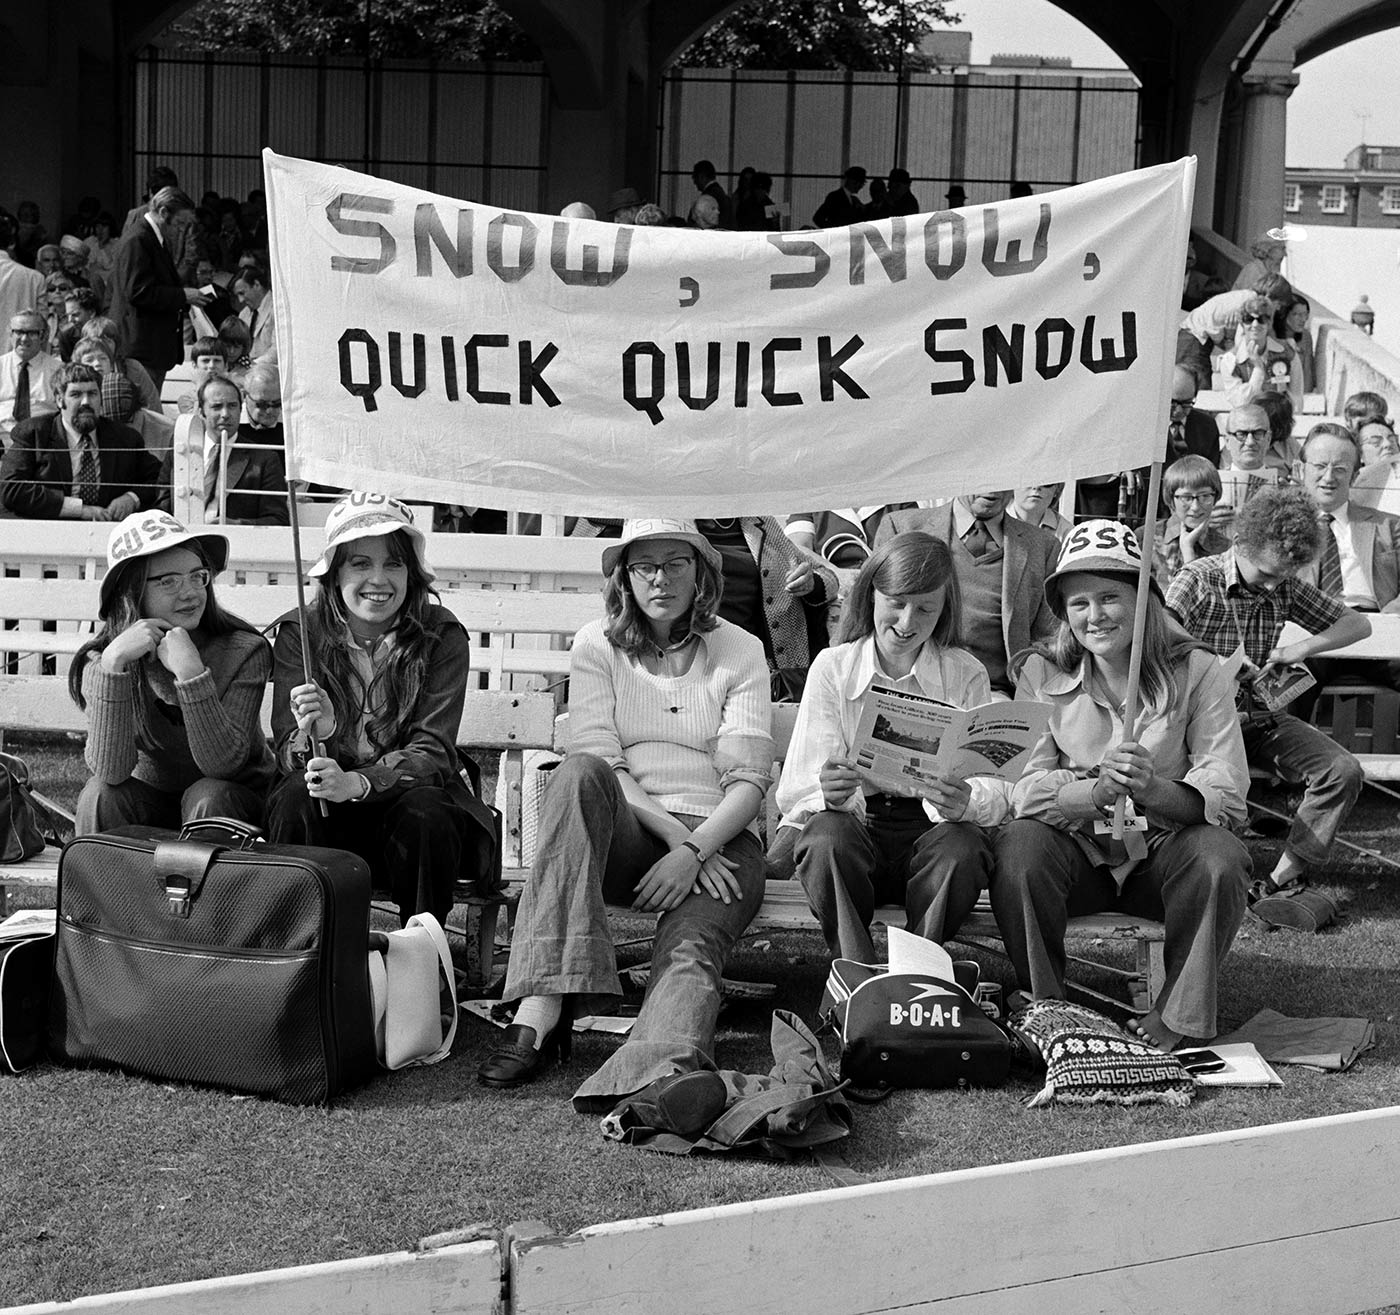 A group of Sussex fans make it clear who they're there to see at the Gillette Cup final in 1973